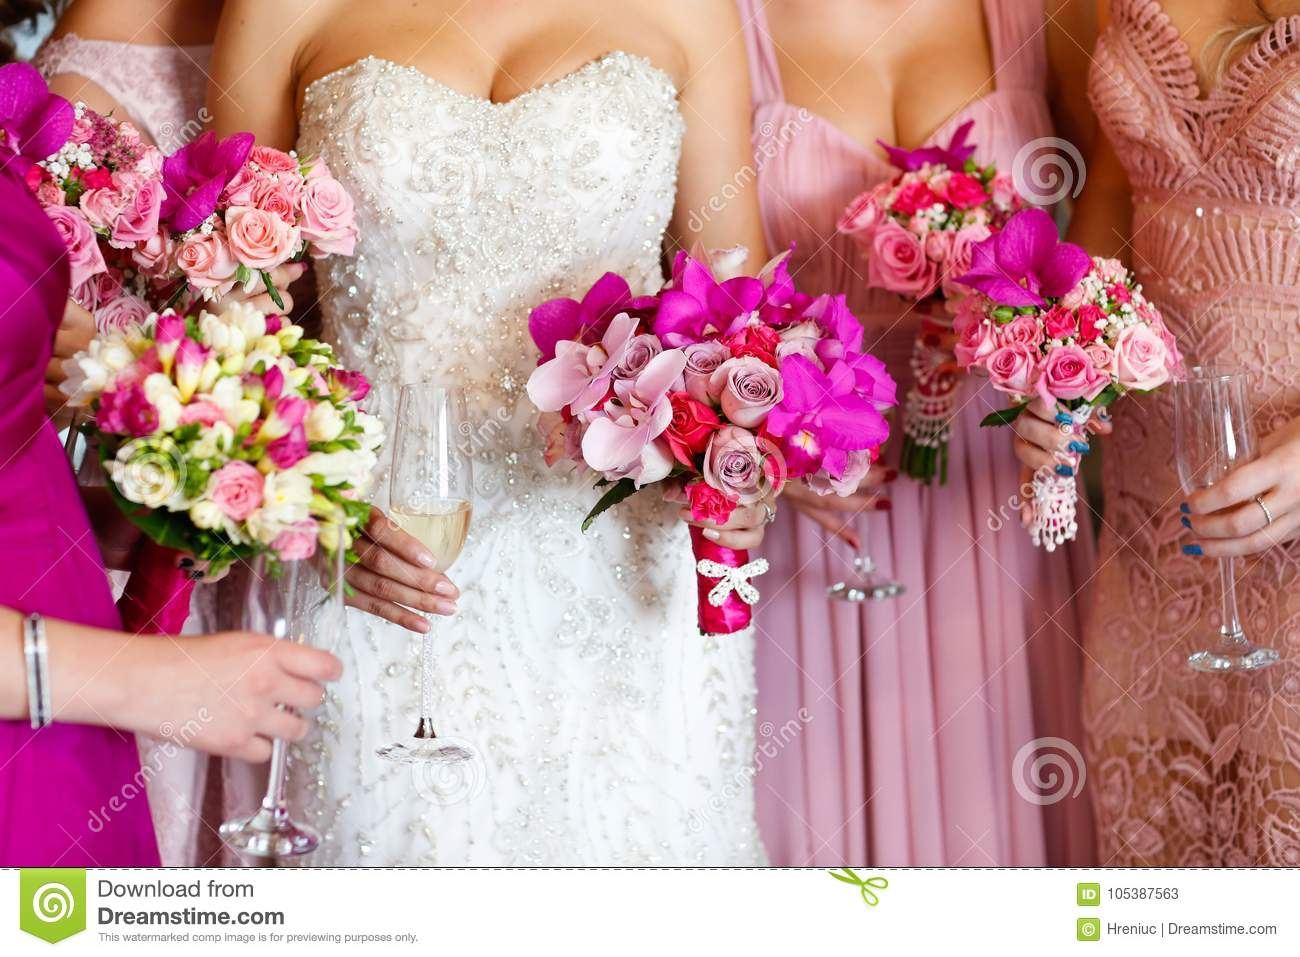 Bride With Bridesmaids Holding Beautiful Flower Bouquet Stock Image